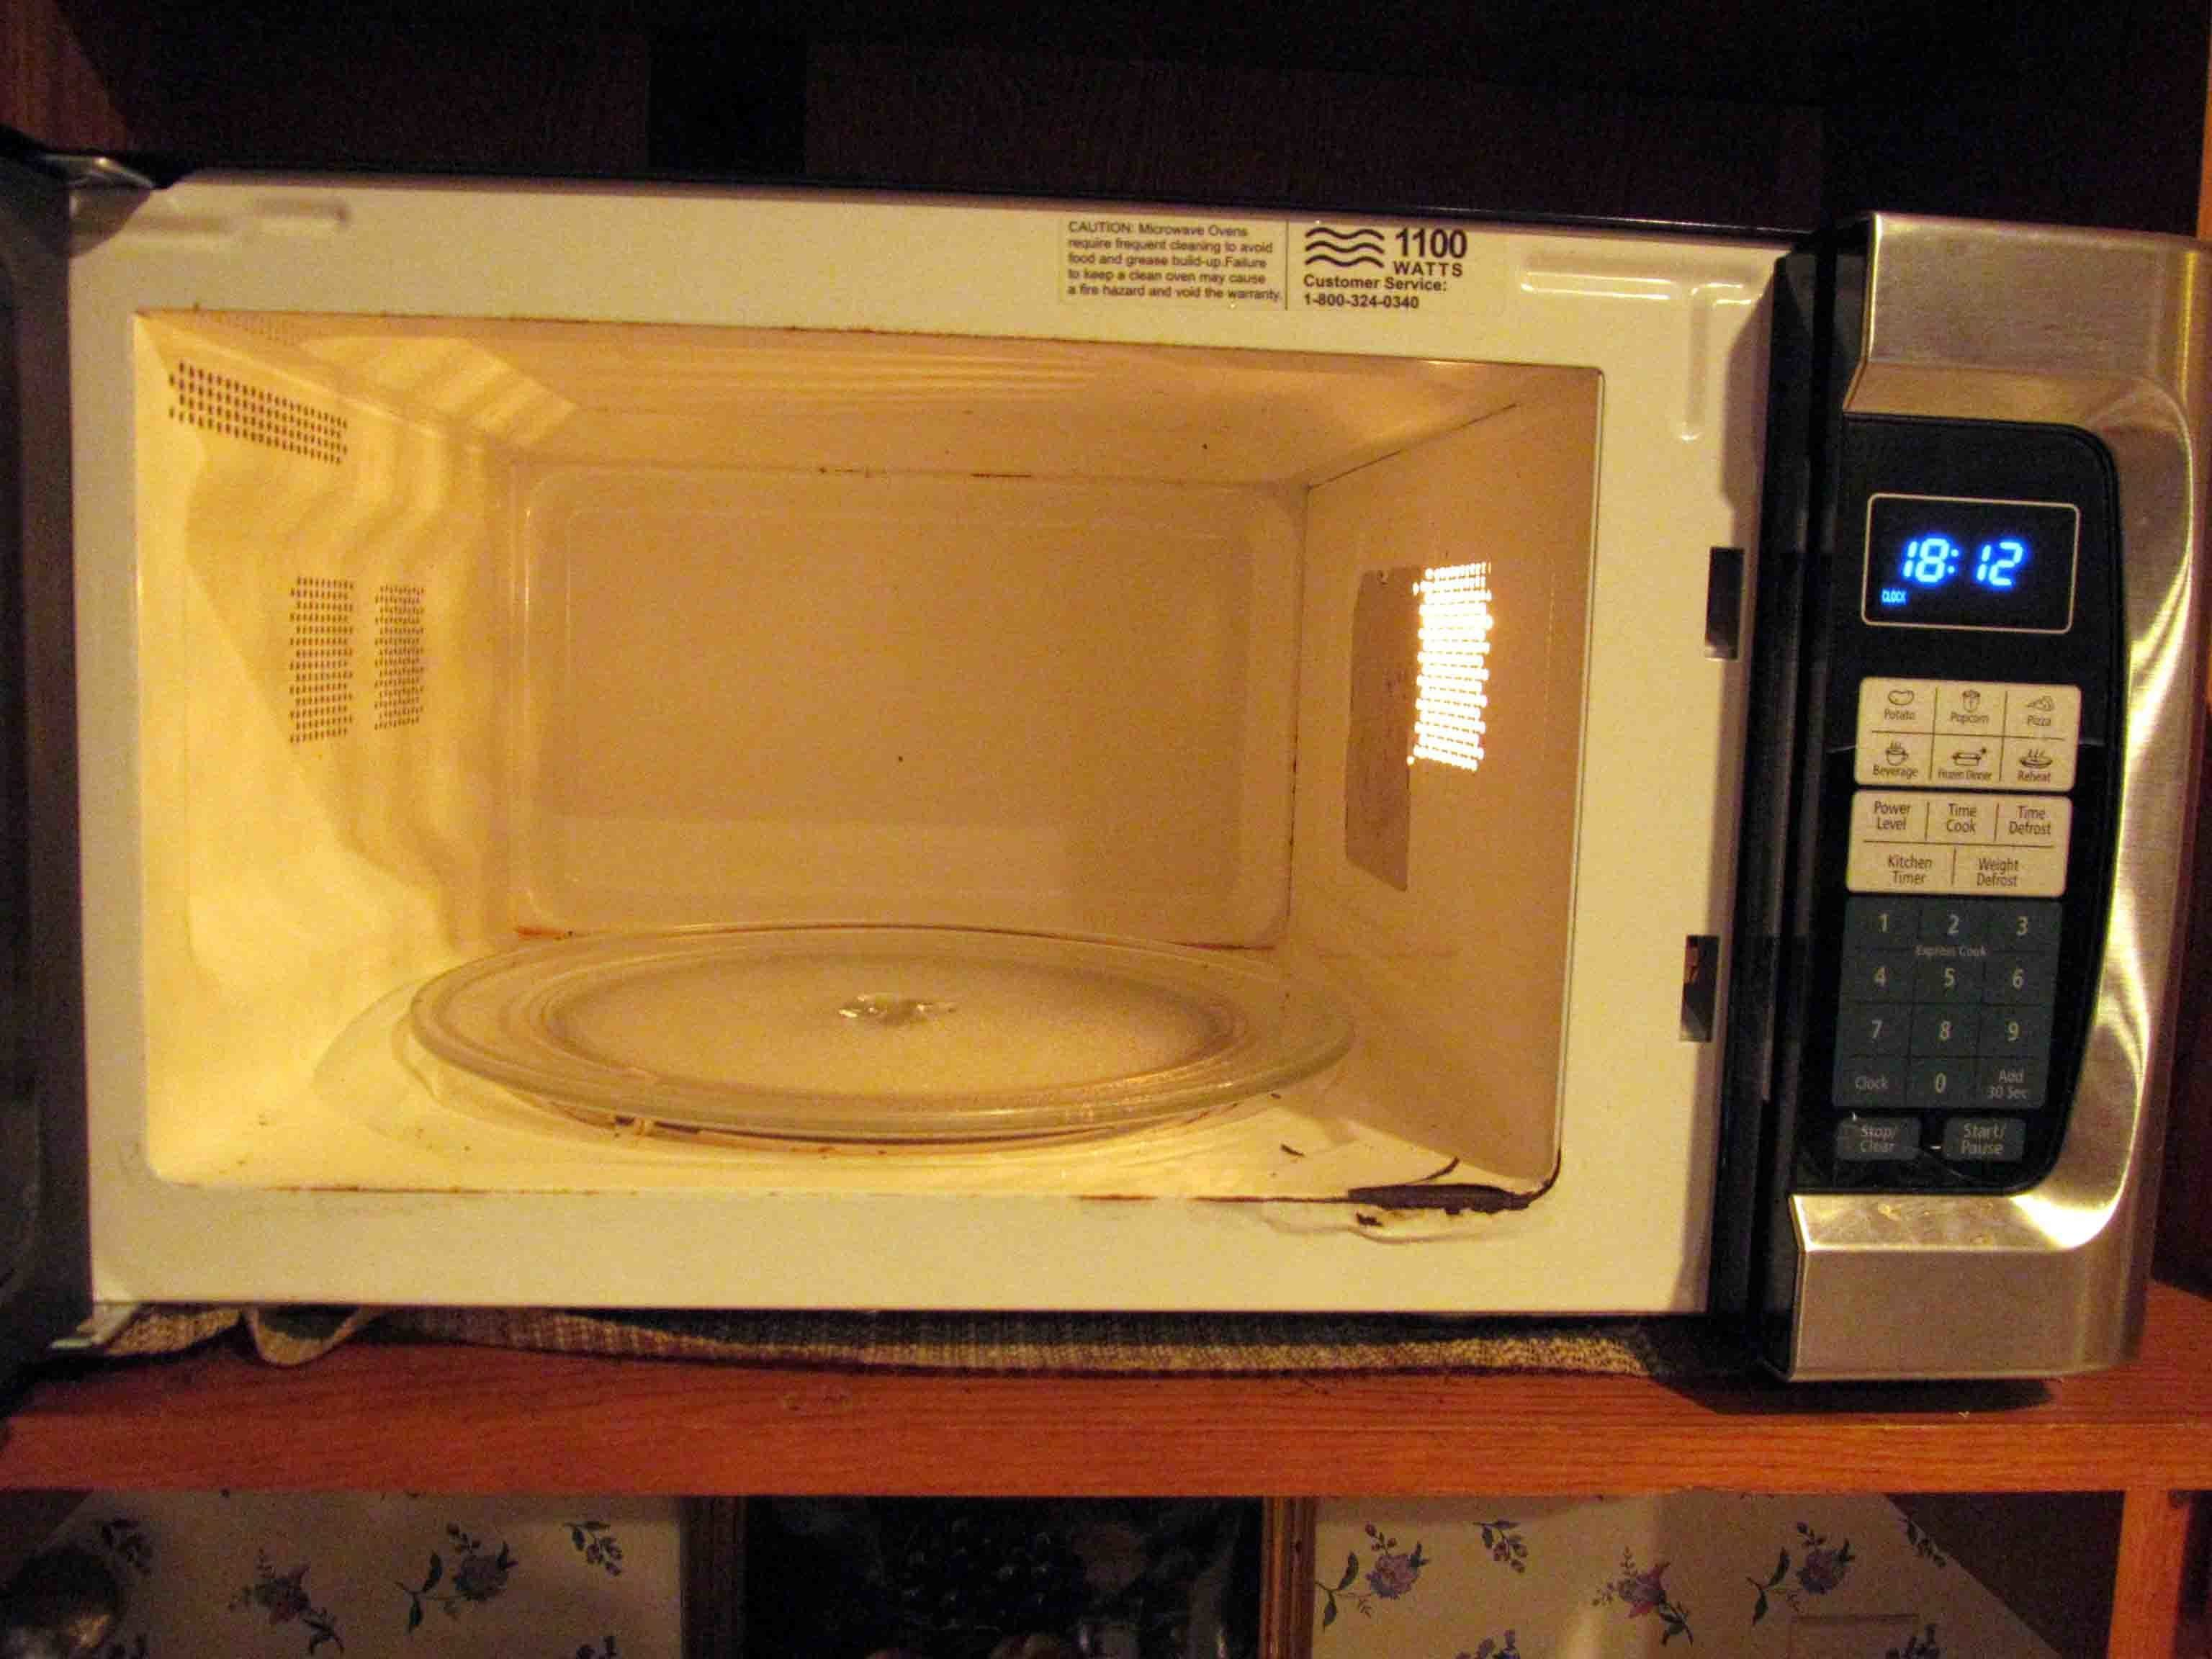 Top 125 Complaints And Reviews About Oster Microwave